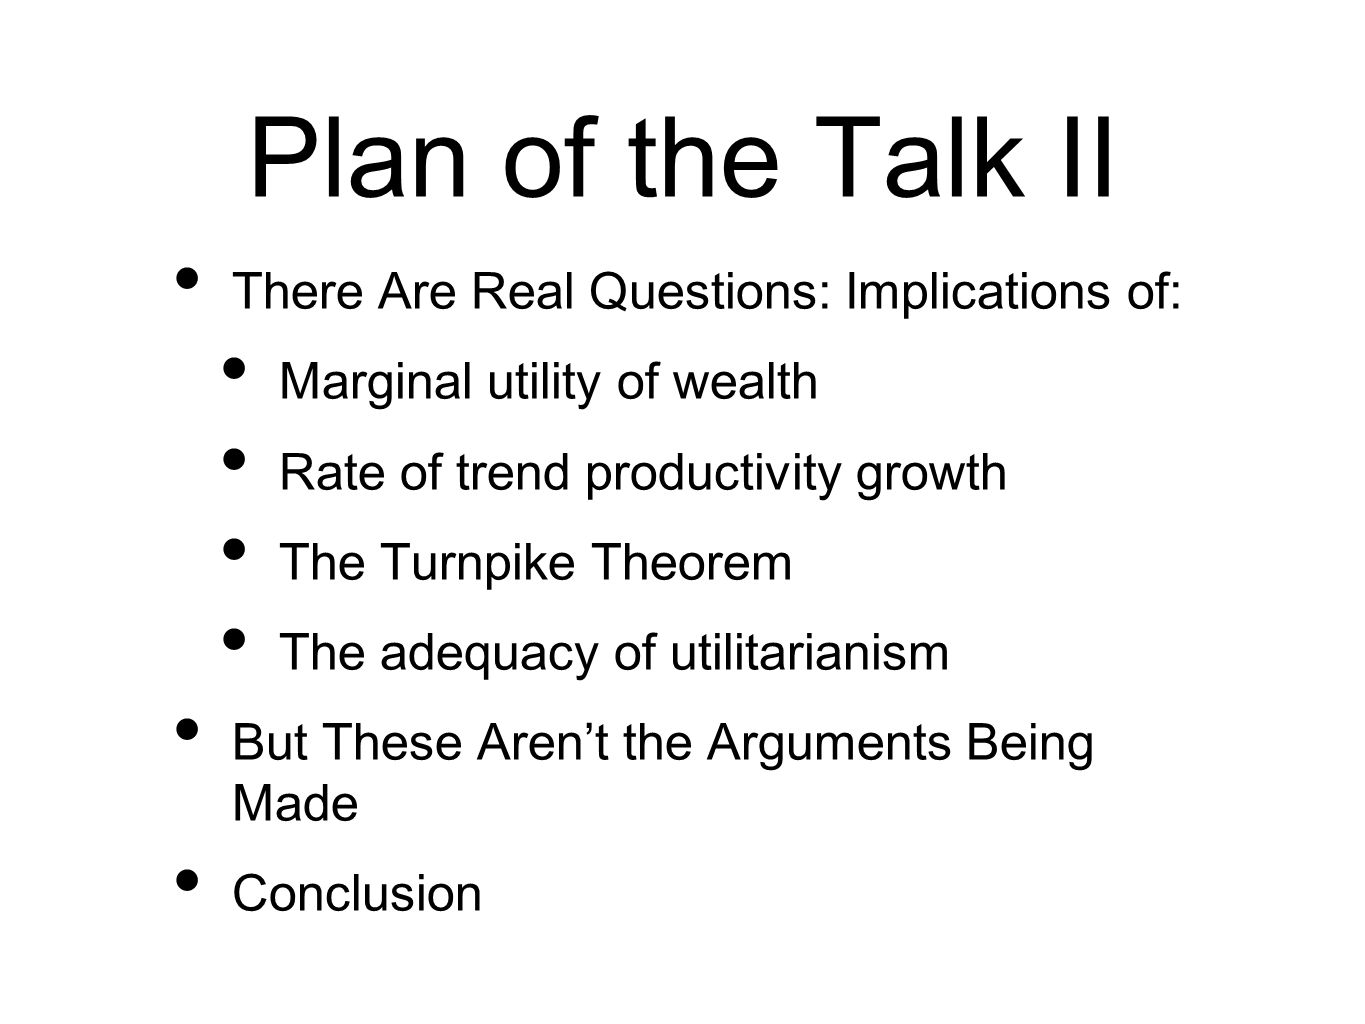 Plan of the Talk II There Are Real Questions: Implications of: Marginal utility of wealth Rate of trend productivity growth The Turnpike Theorem The adequacy of utilitarianism But These Arent the Arguments Being Made Conclusion